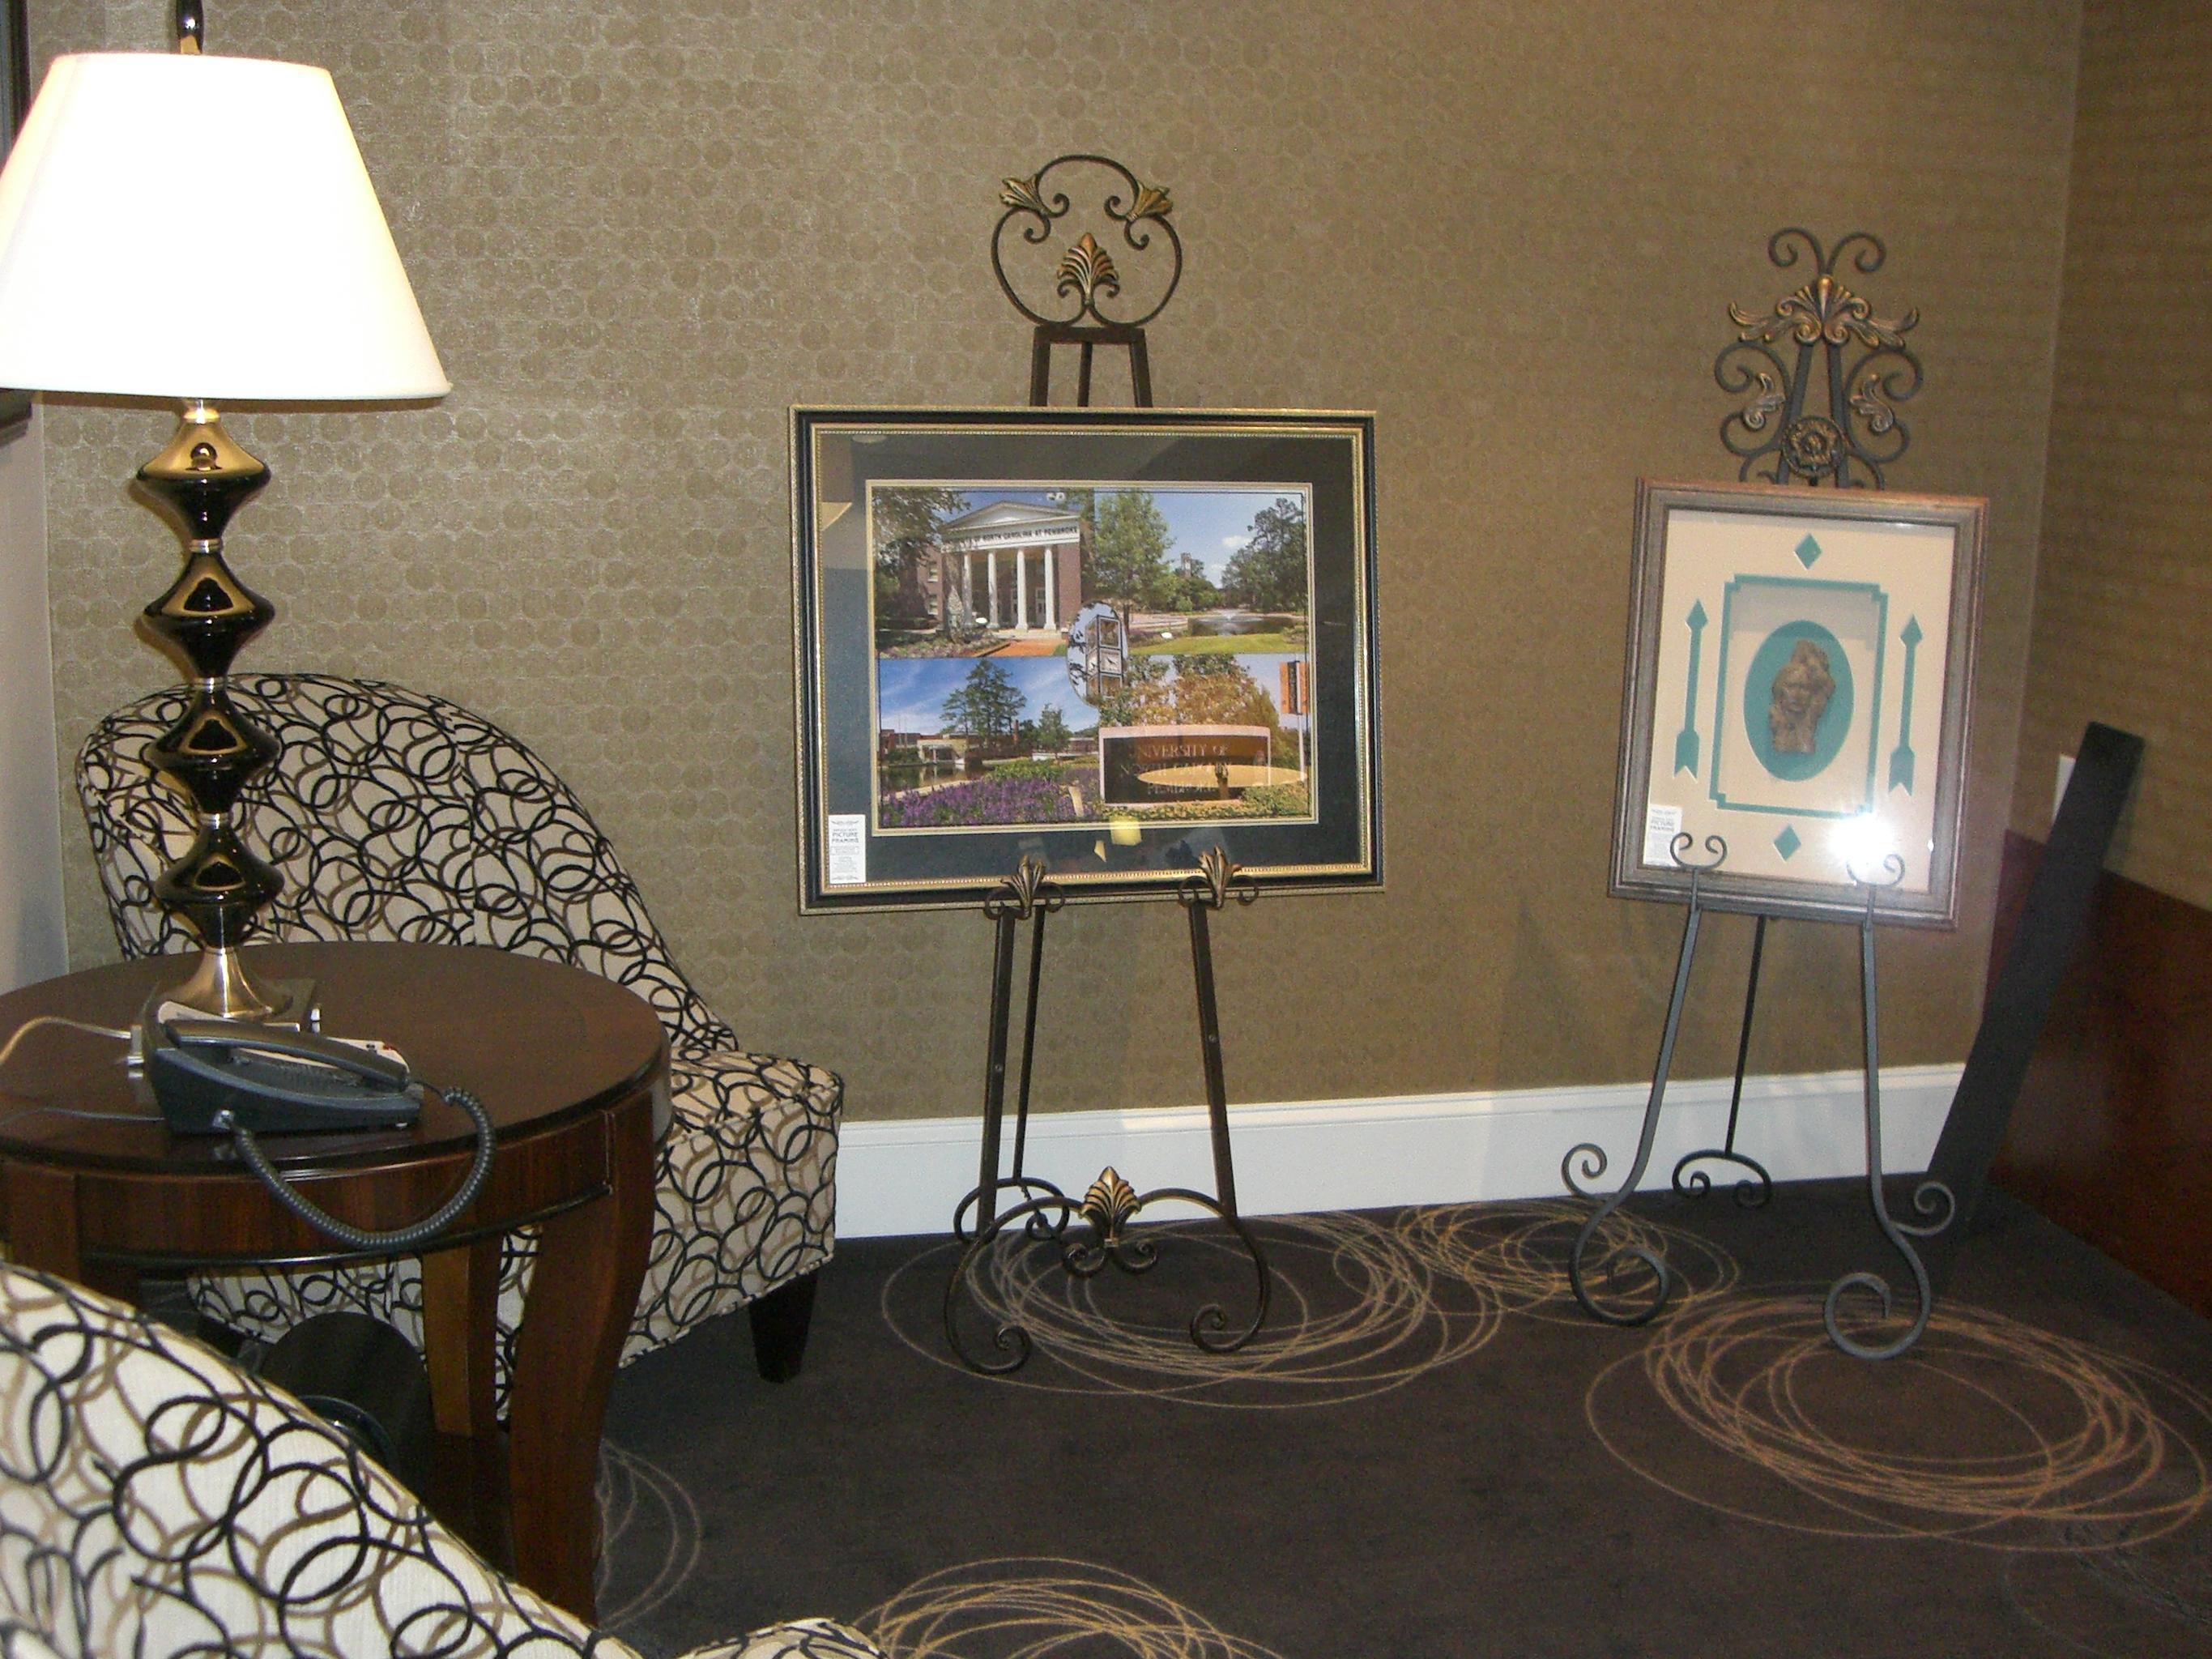 View some of the art from local artists